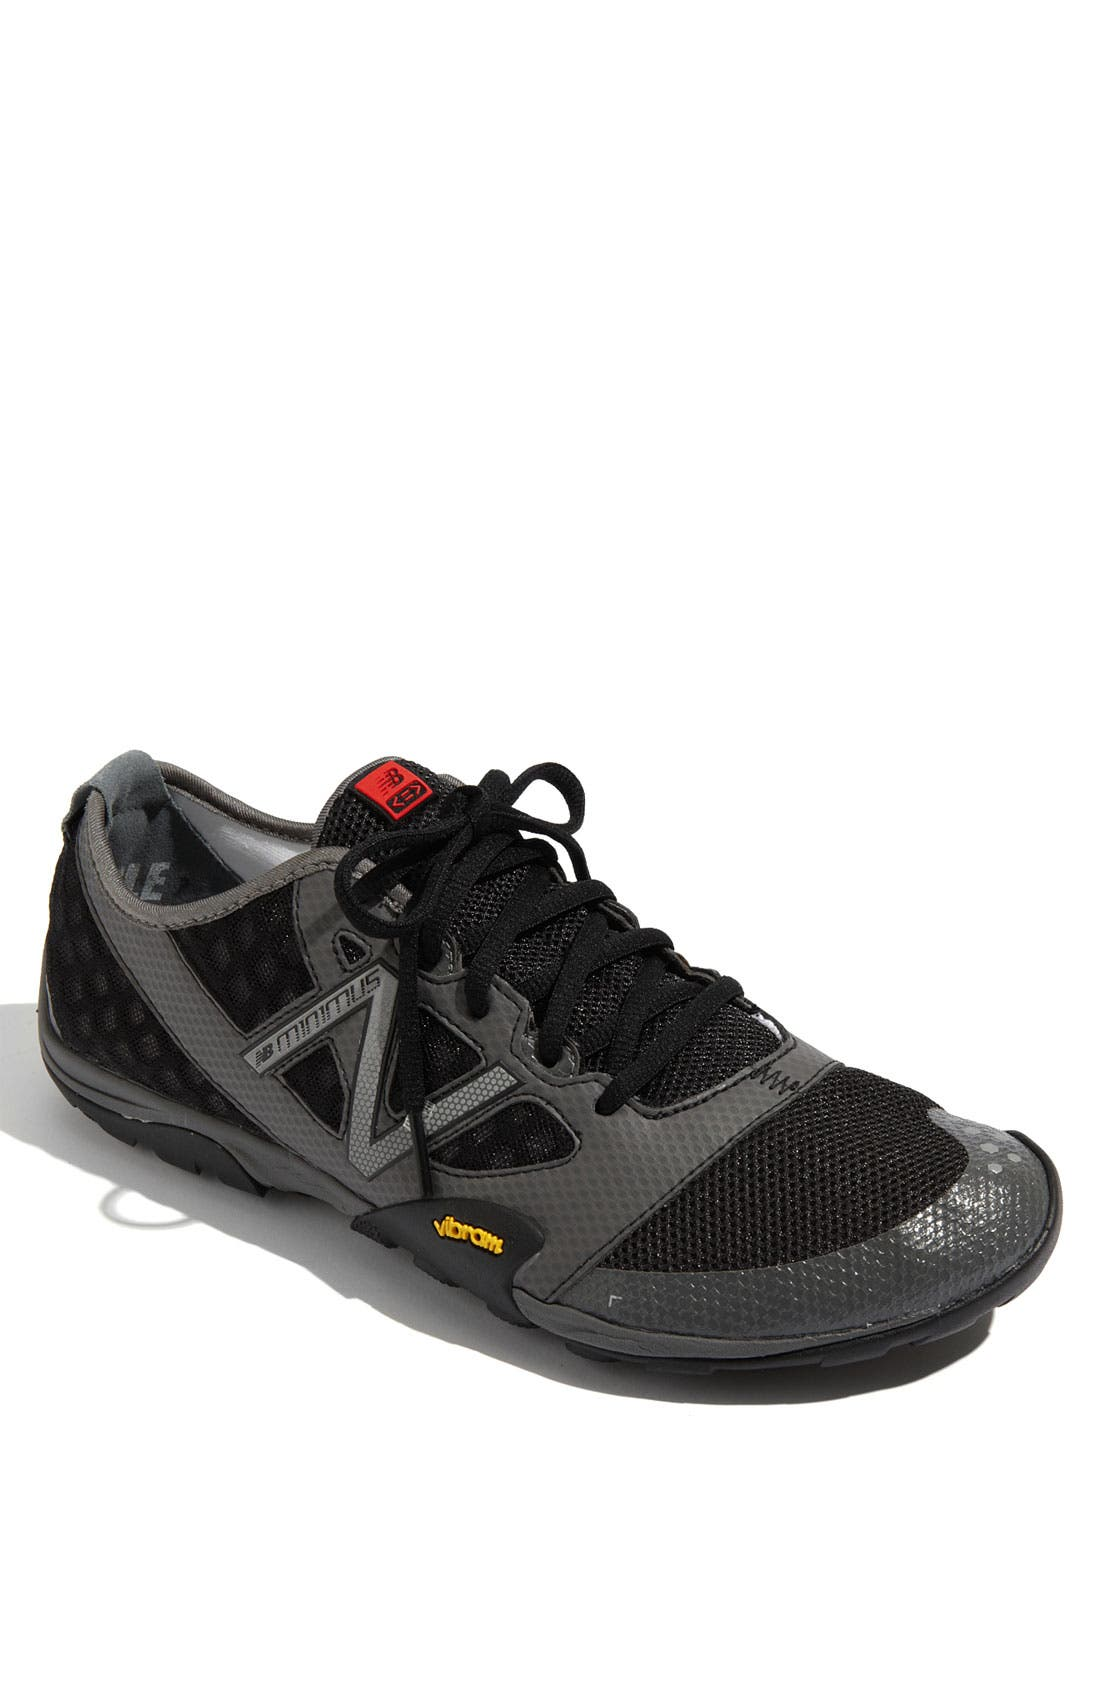 Main Image - New Balance 'MT 20 Minimus' Running Shoe (Men)